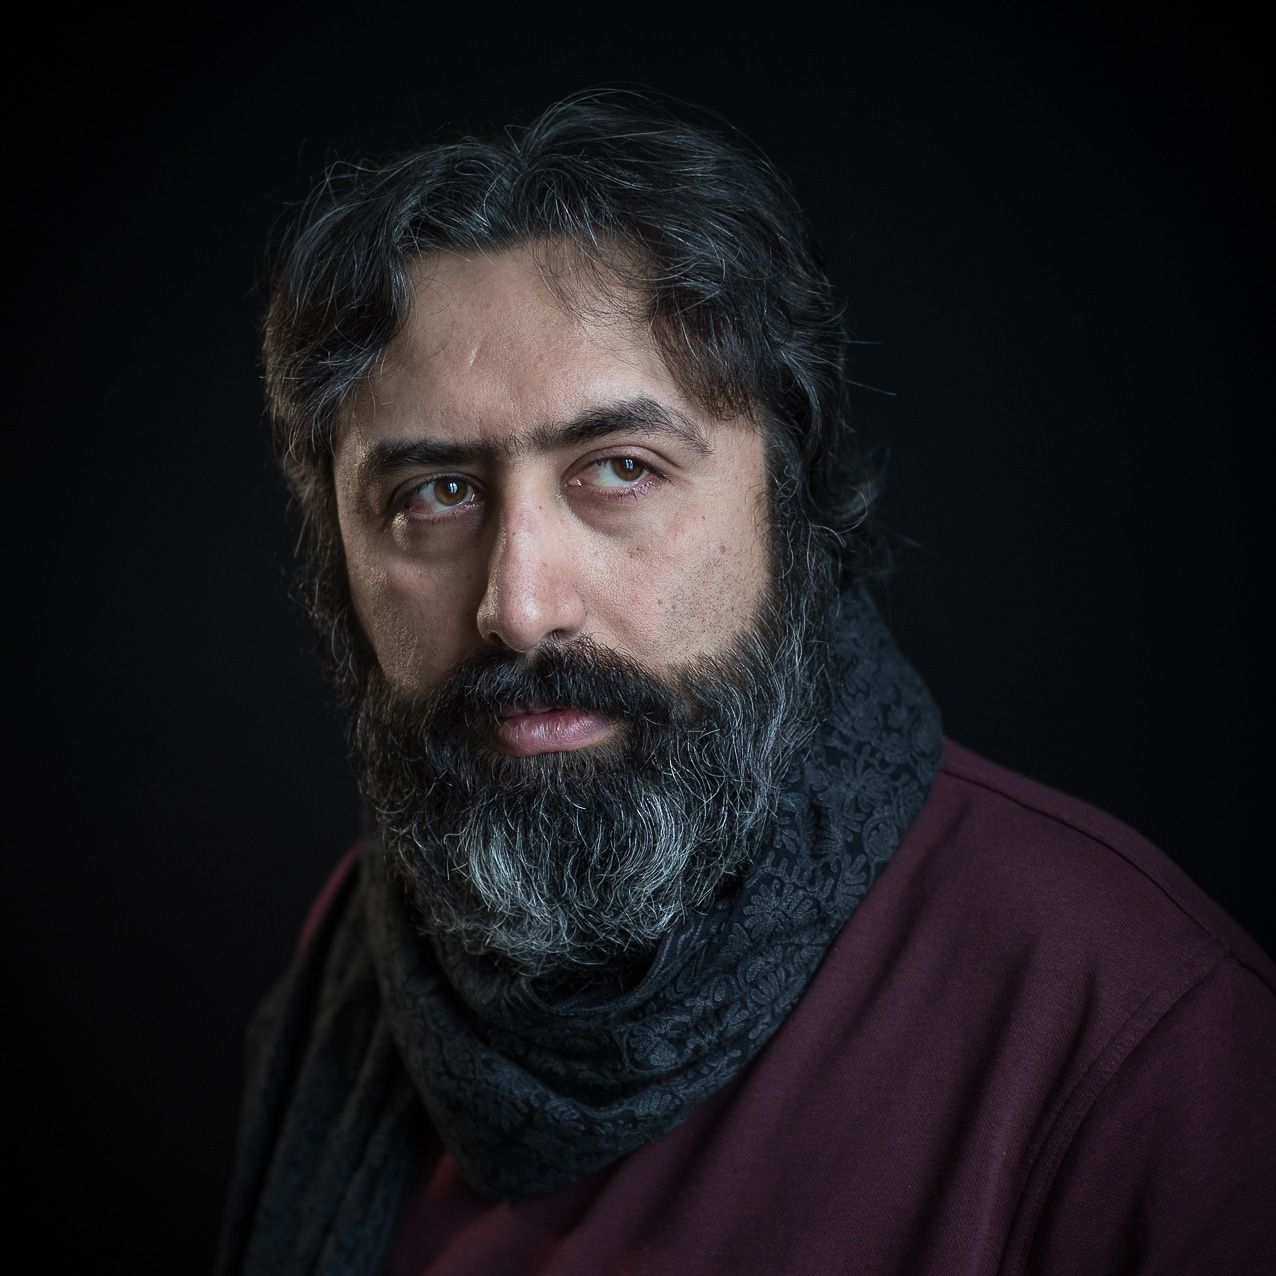 Mehdi Mousavi. Poet living in Lillehammer. Photo: Tine Poppe/Aschehoug. Photo.